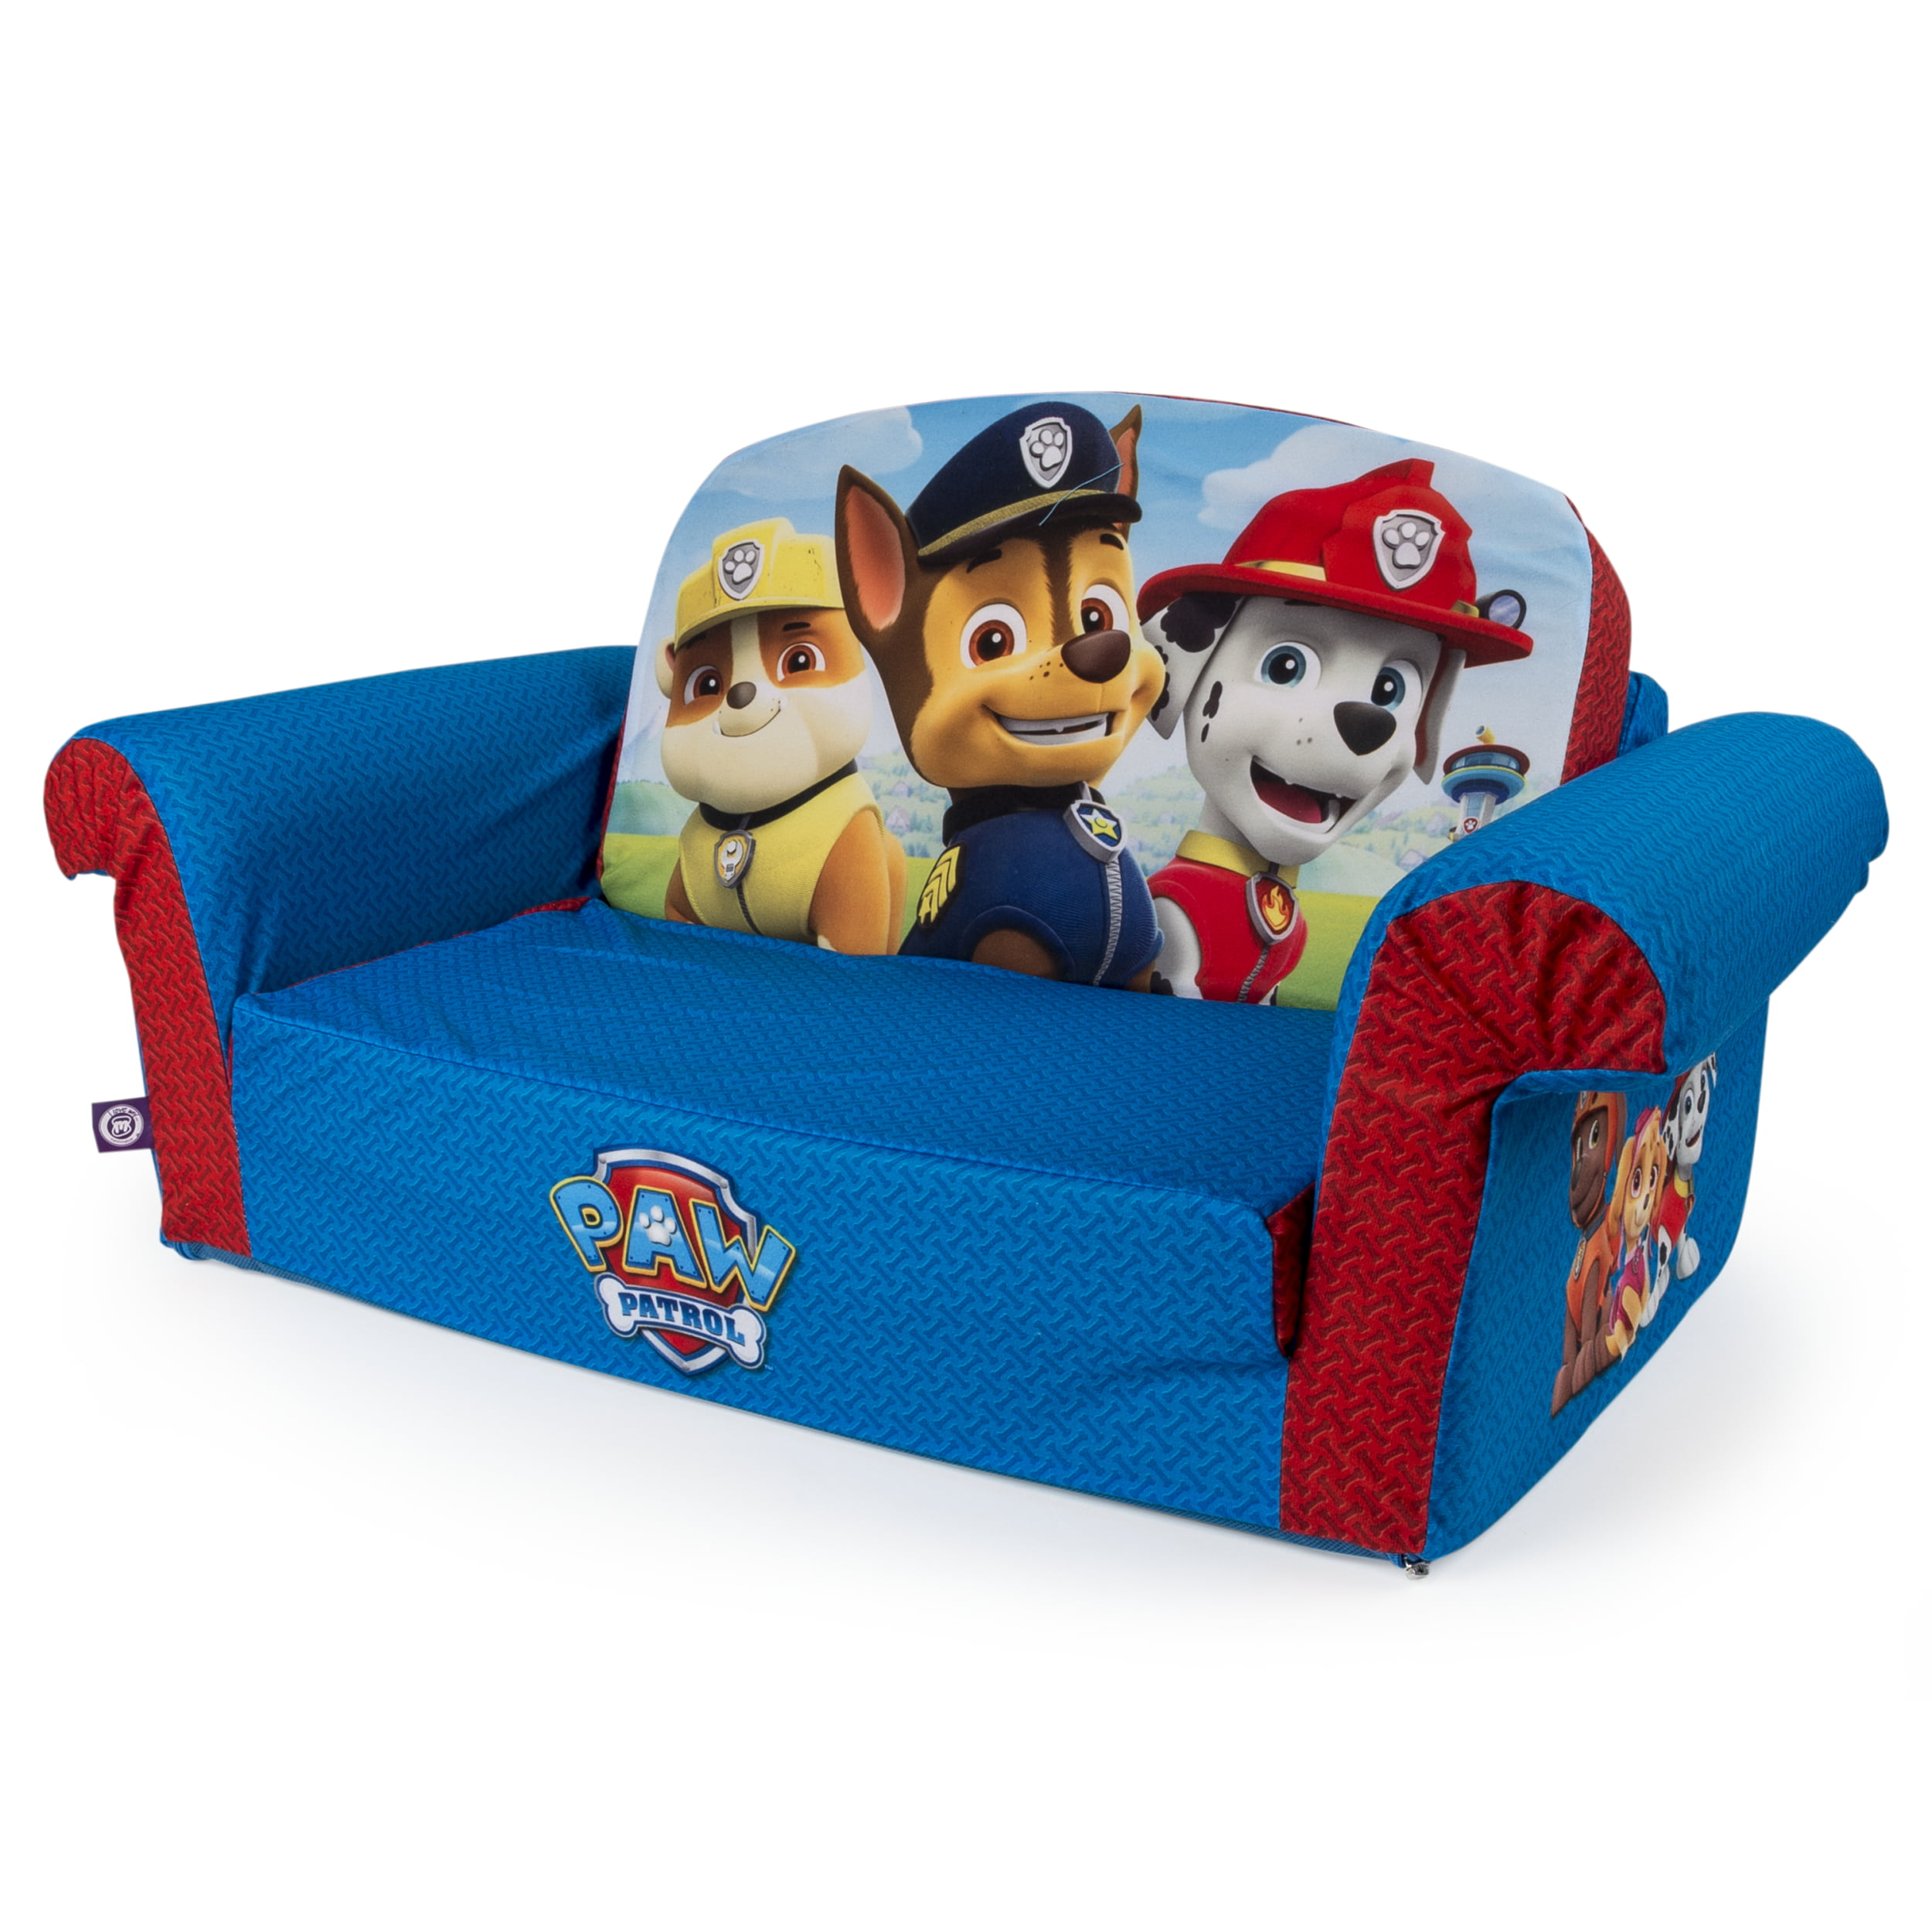 Marshmallow Furniture, Childrenu0027s 2 In 1 Flip Open Foam Sofa, Nickelodeon  Paw Patrol, By Spin Master   Walmart.com